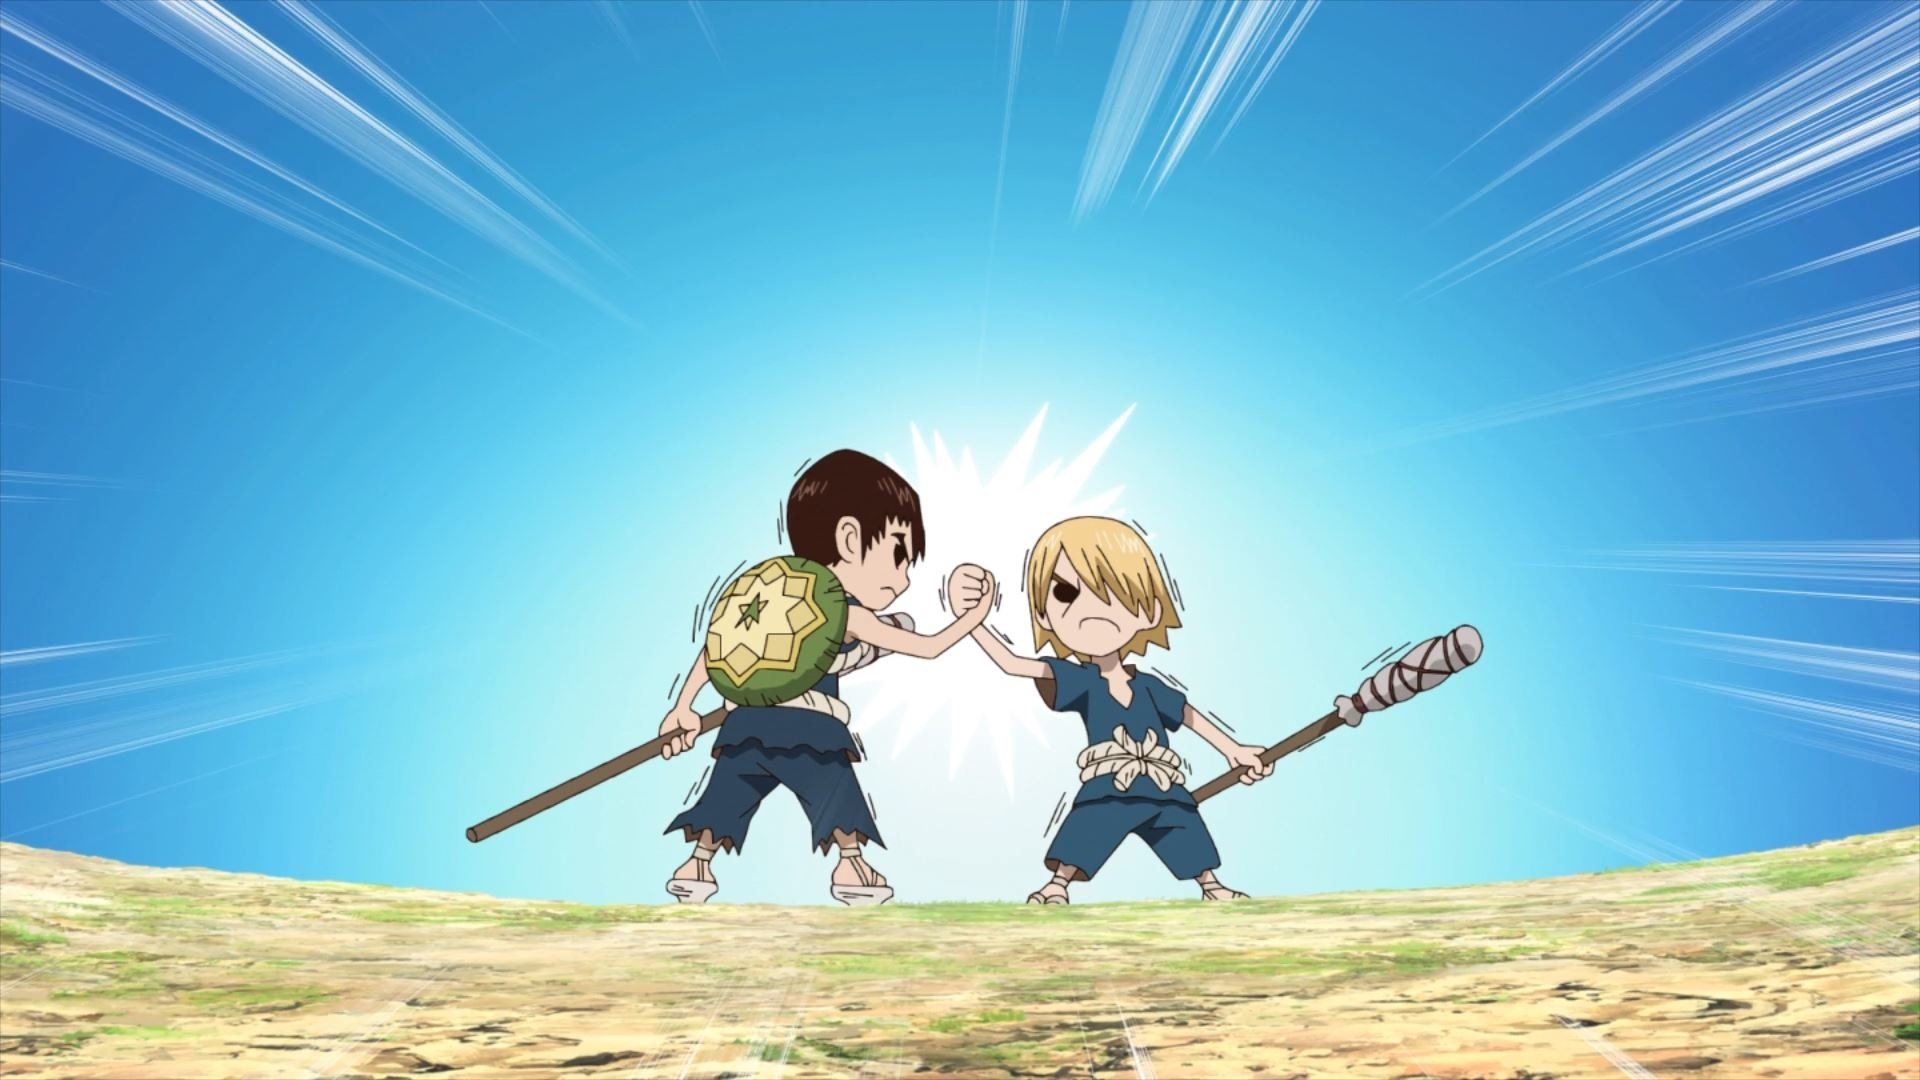 Dr.stone ep 11 screen 4